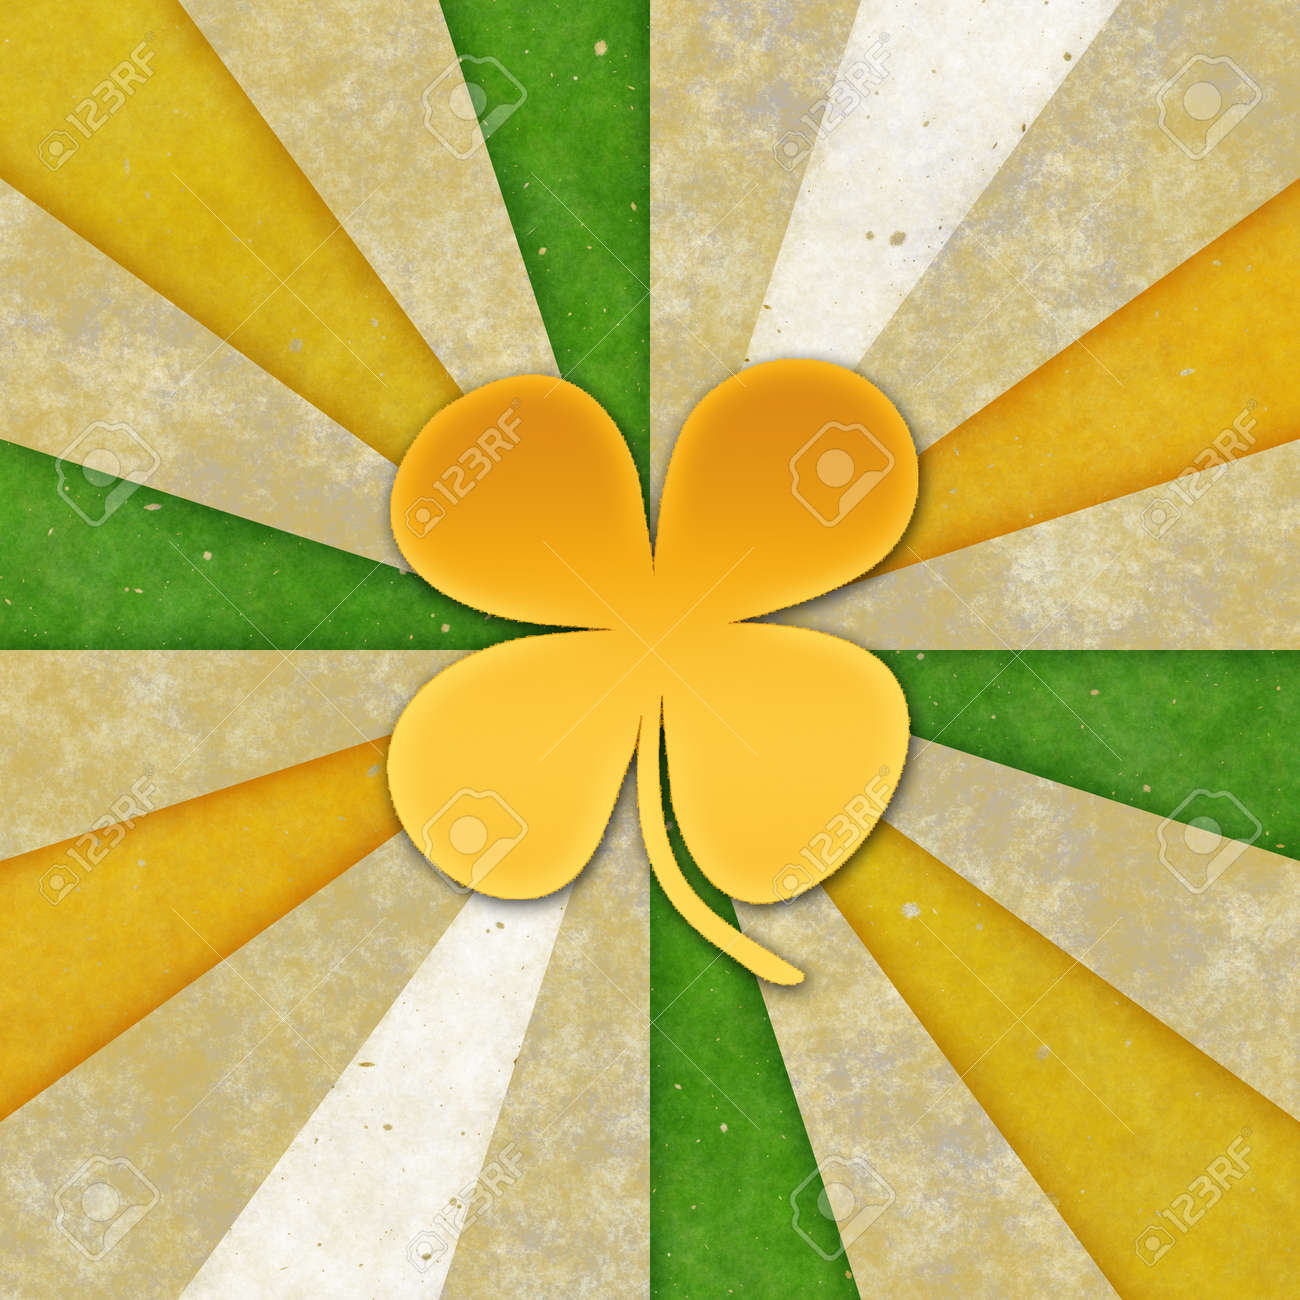 Vintage background for St patrick day. (4 leaves.) Stock Photo - 17570098